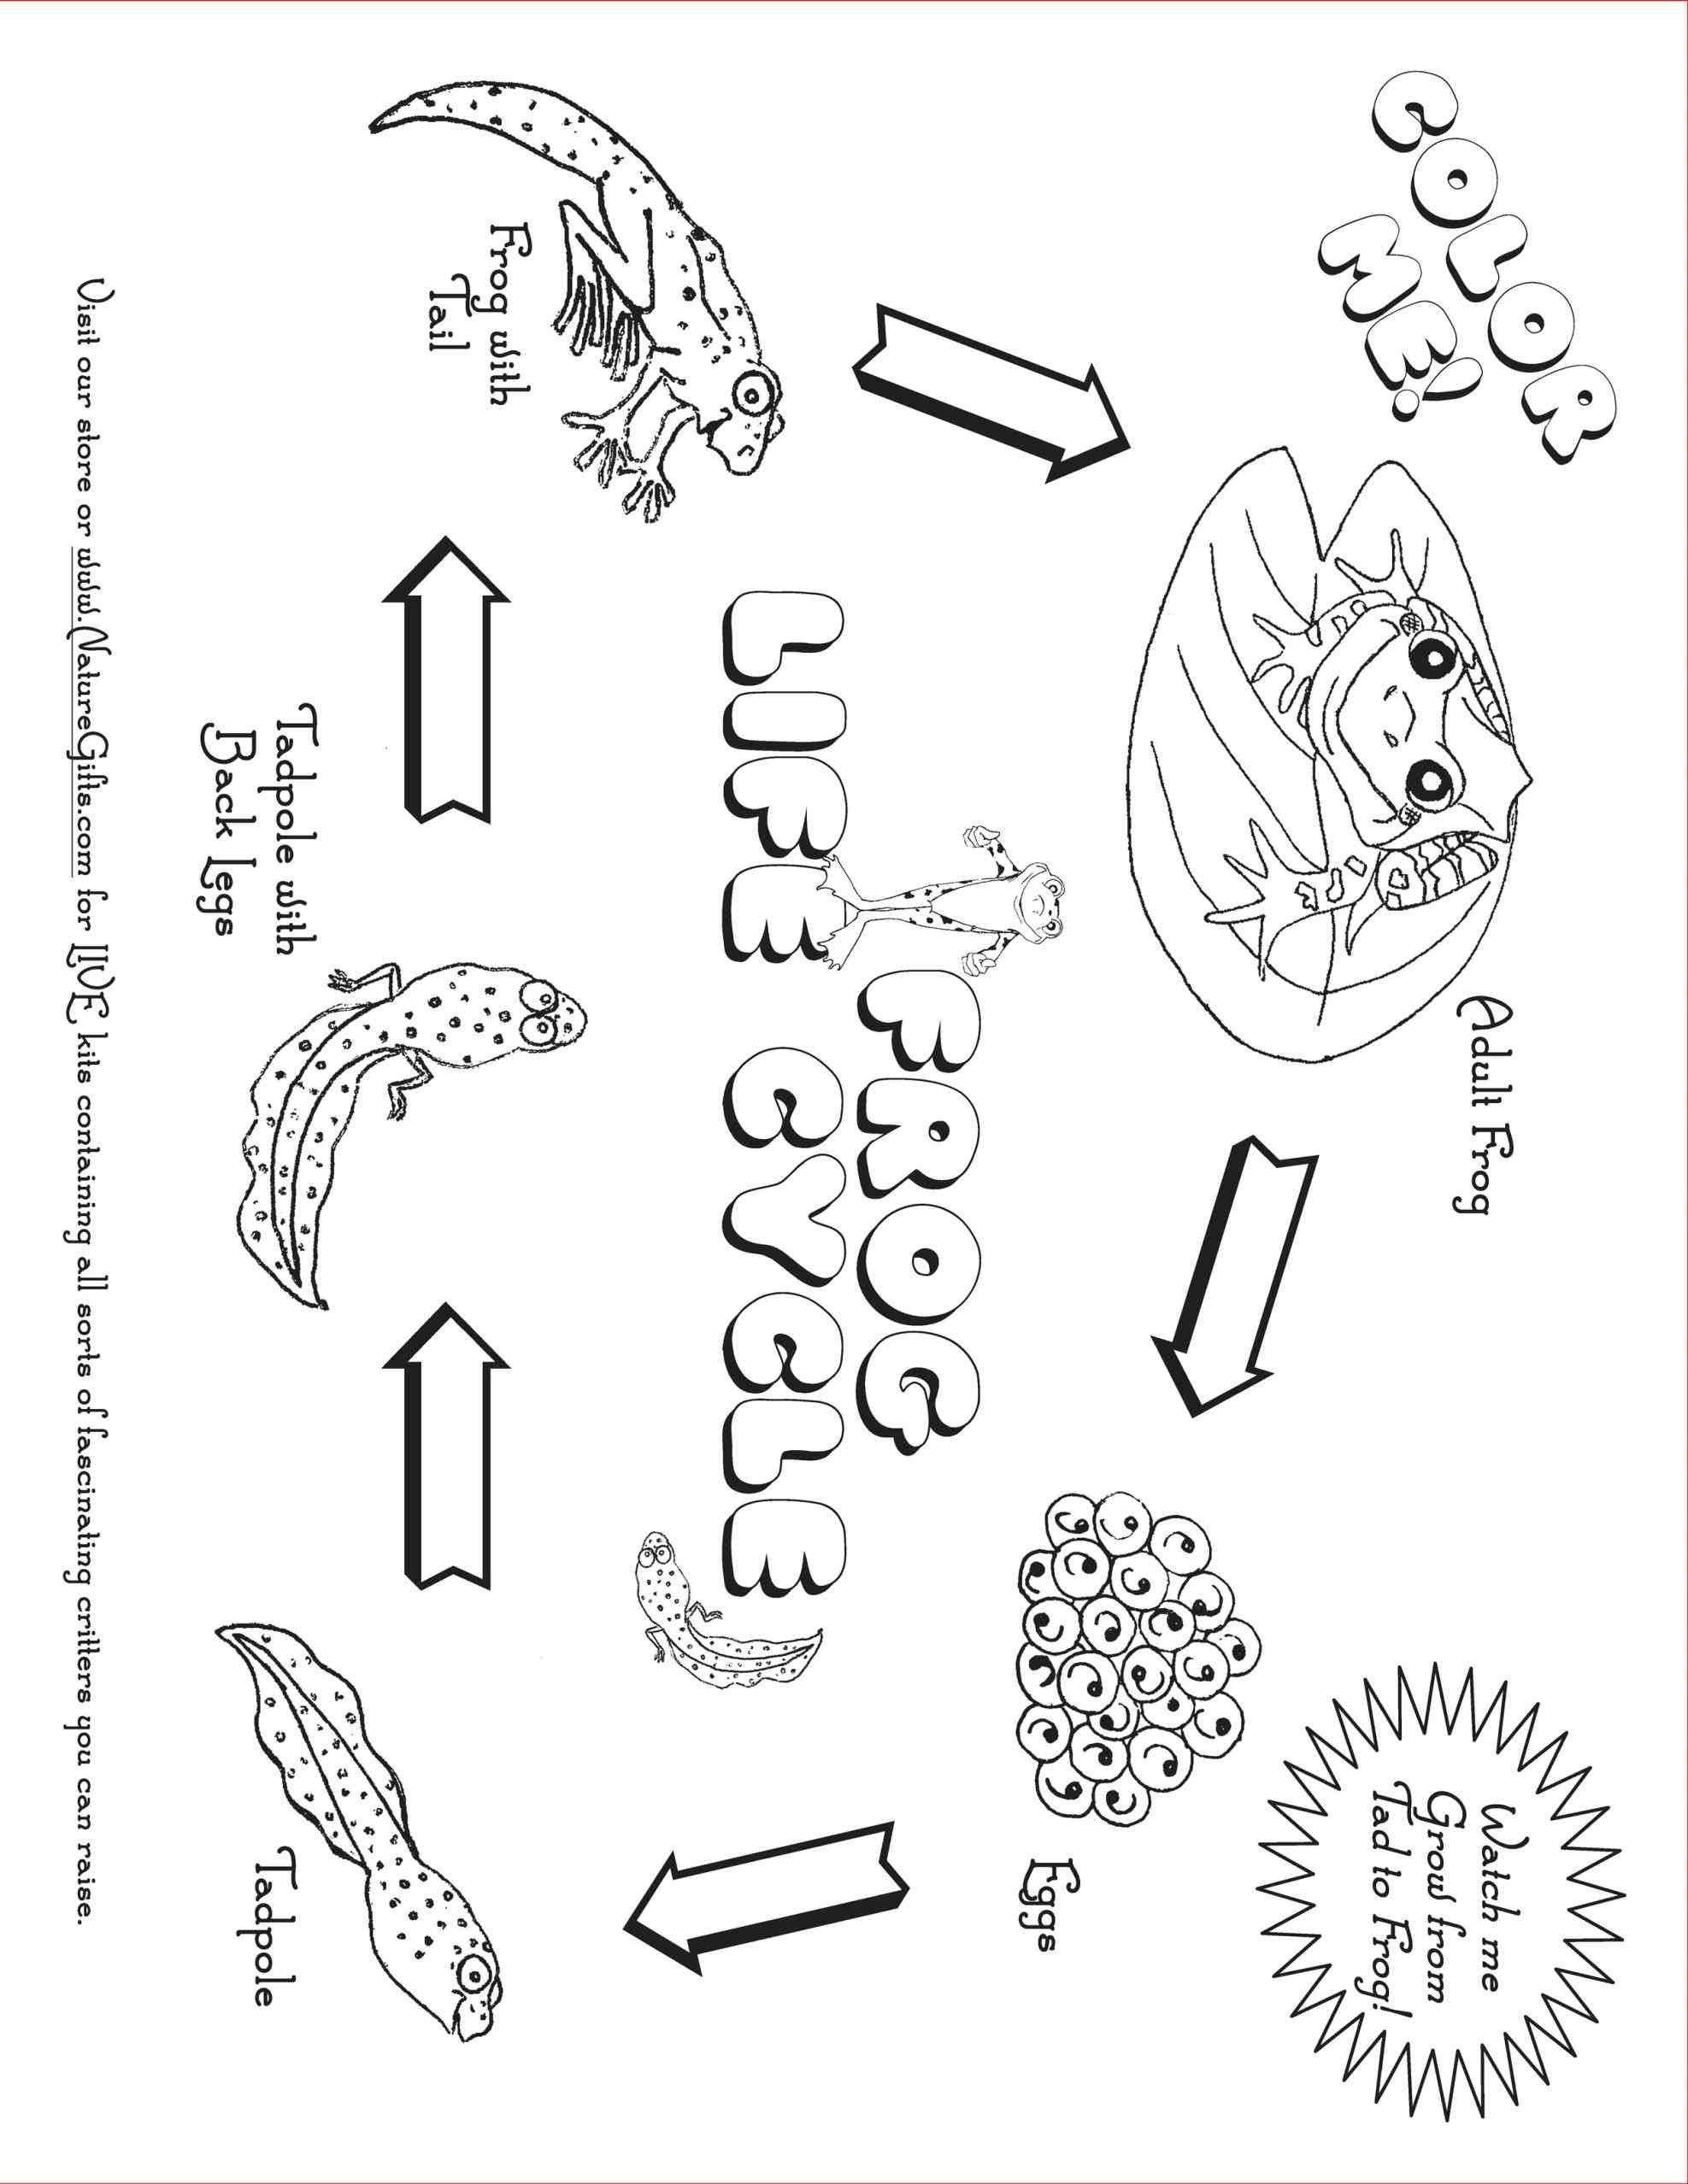 Plant Life Cycle Drawing At Getdrawings